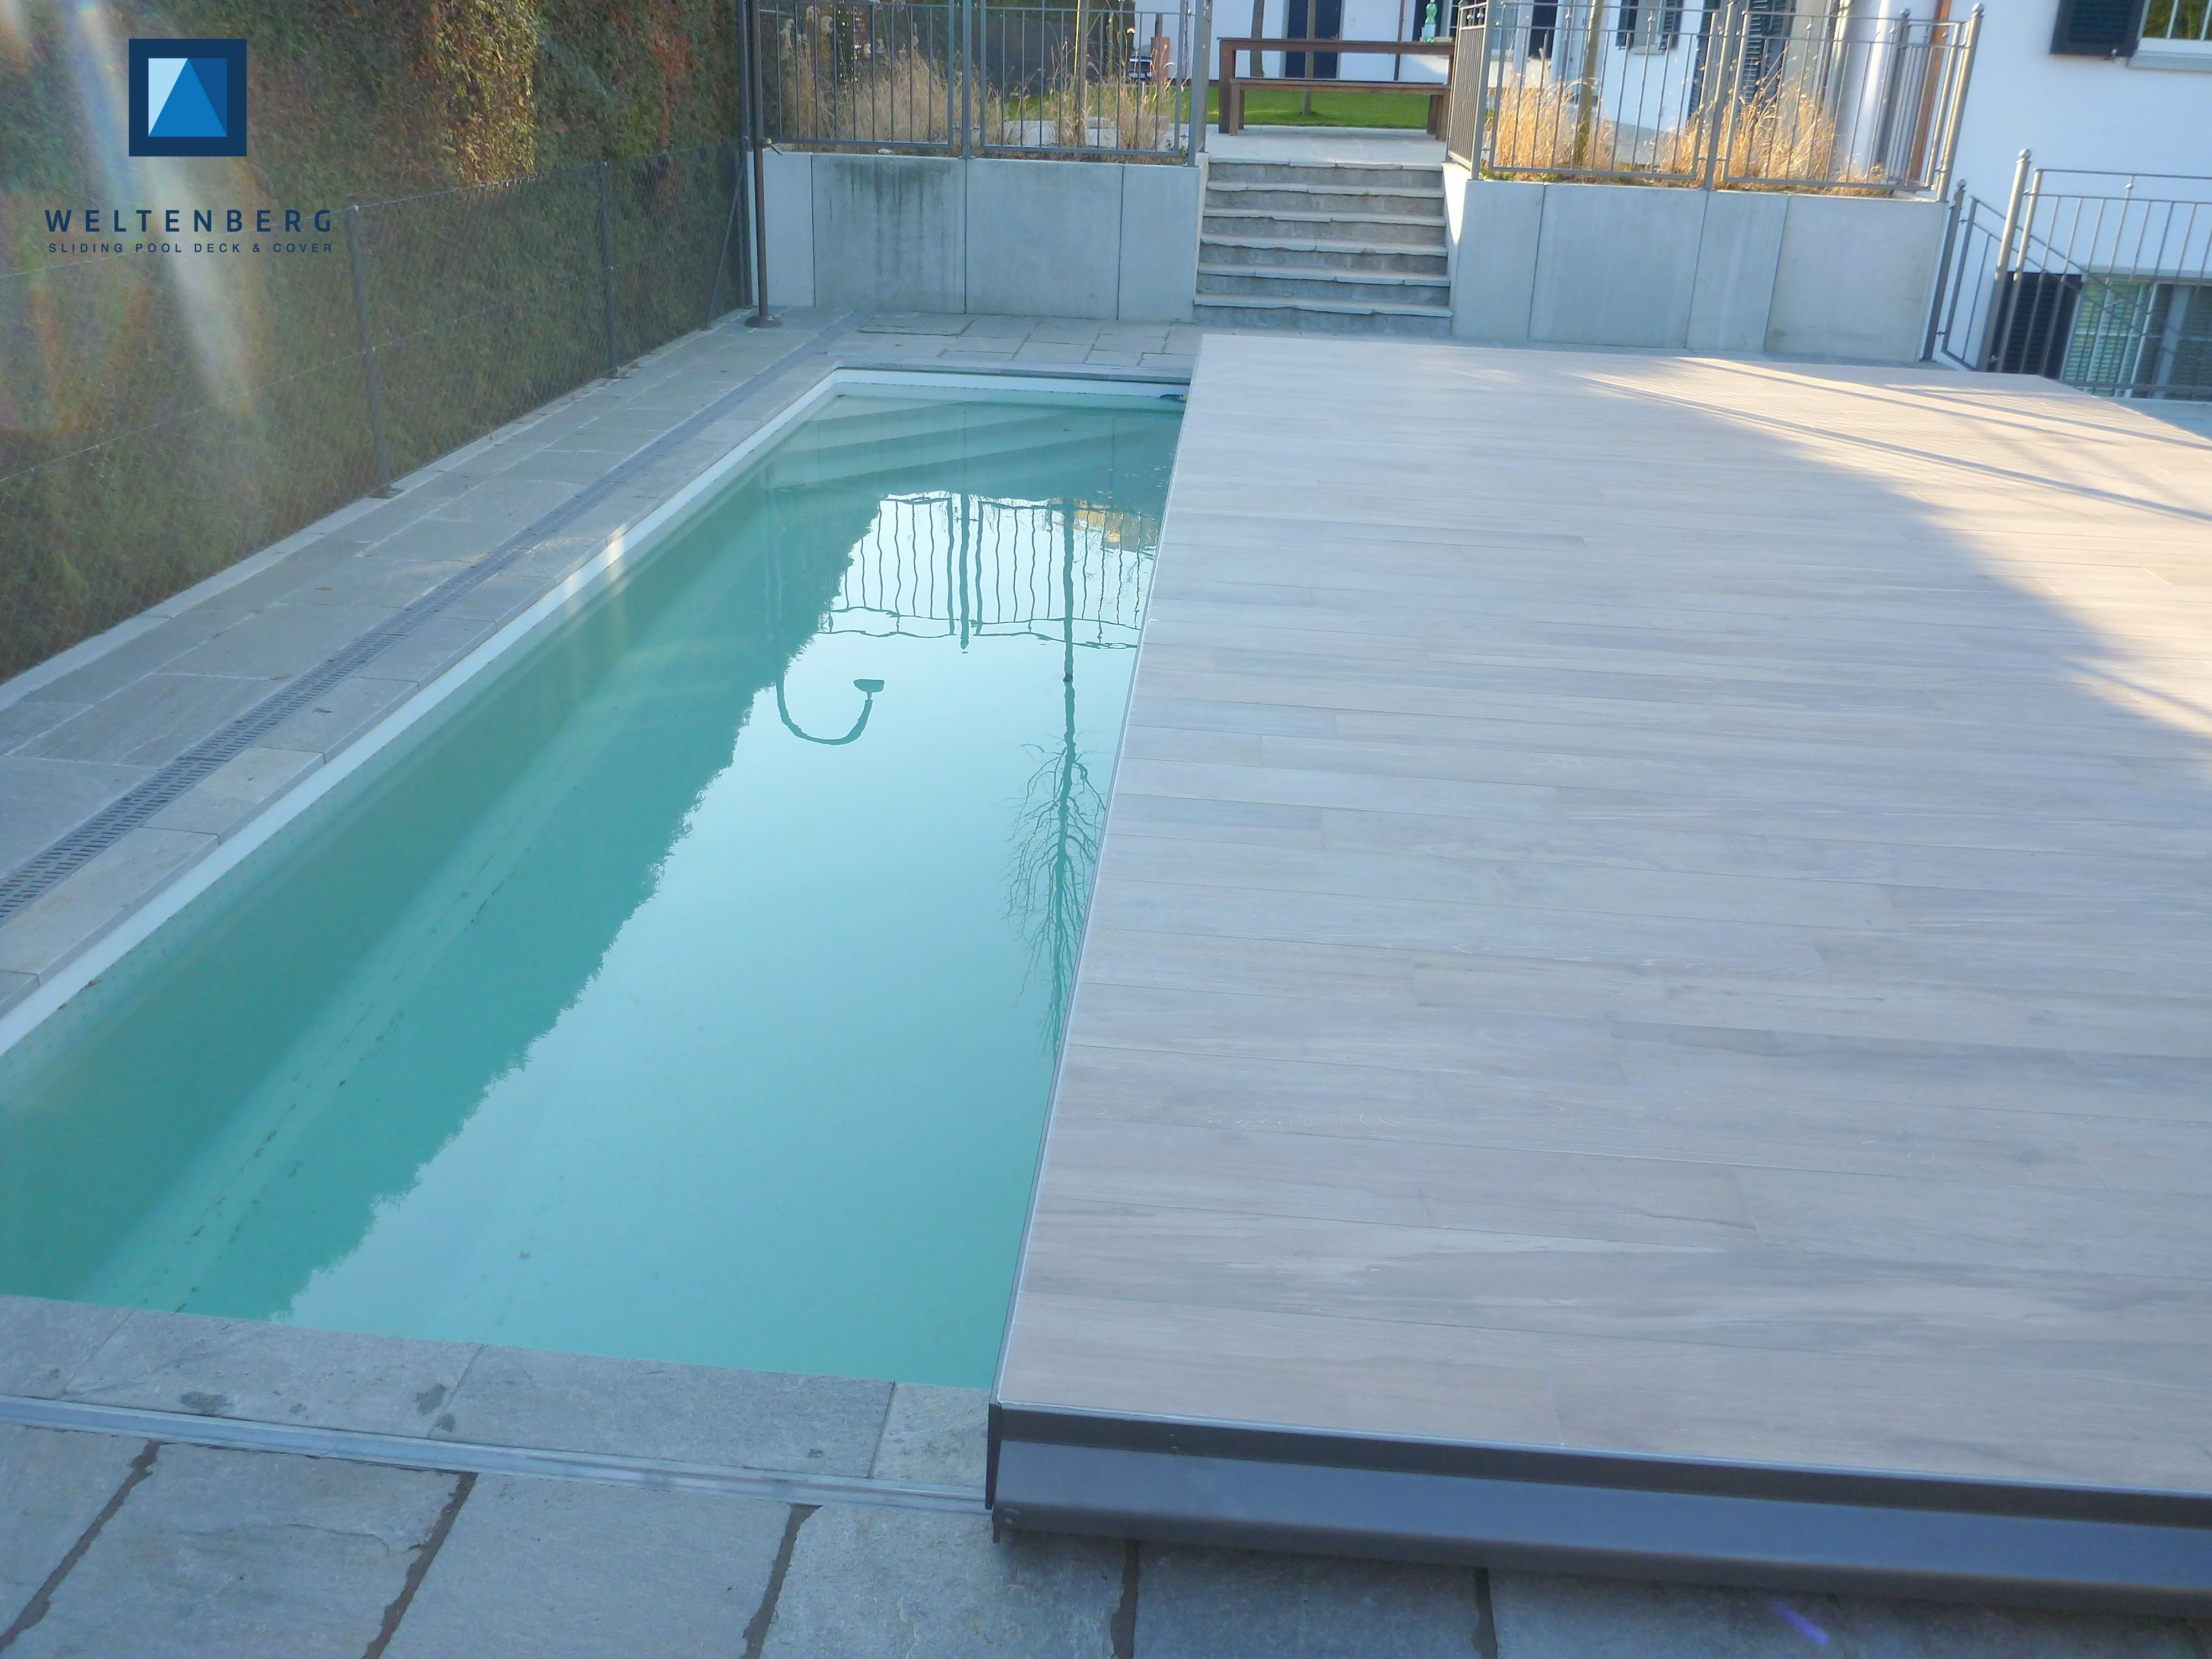 Poolabdeckung Begehbar Rund Sliding Swimming Pool Cover And Terrace Moveable Pooldeck